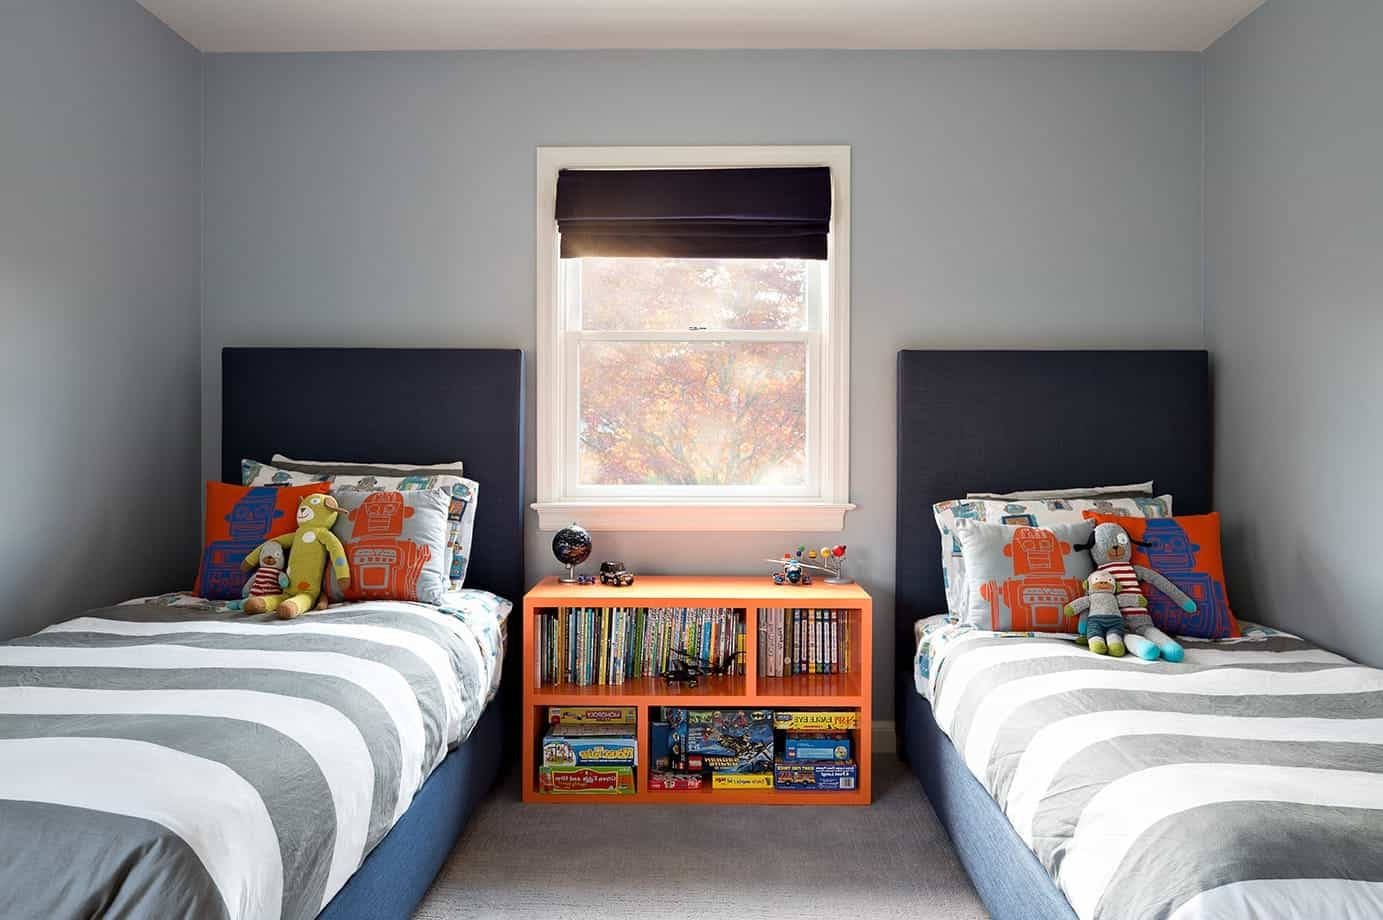 2017 Contemporary Kids' Room With Twin Beds (Image 1 of 27)